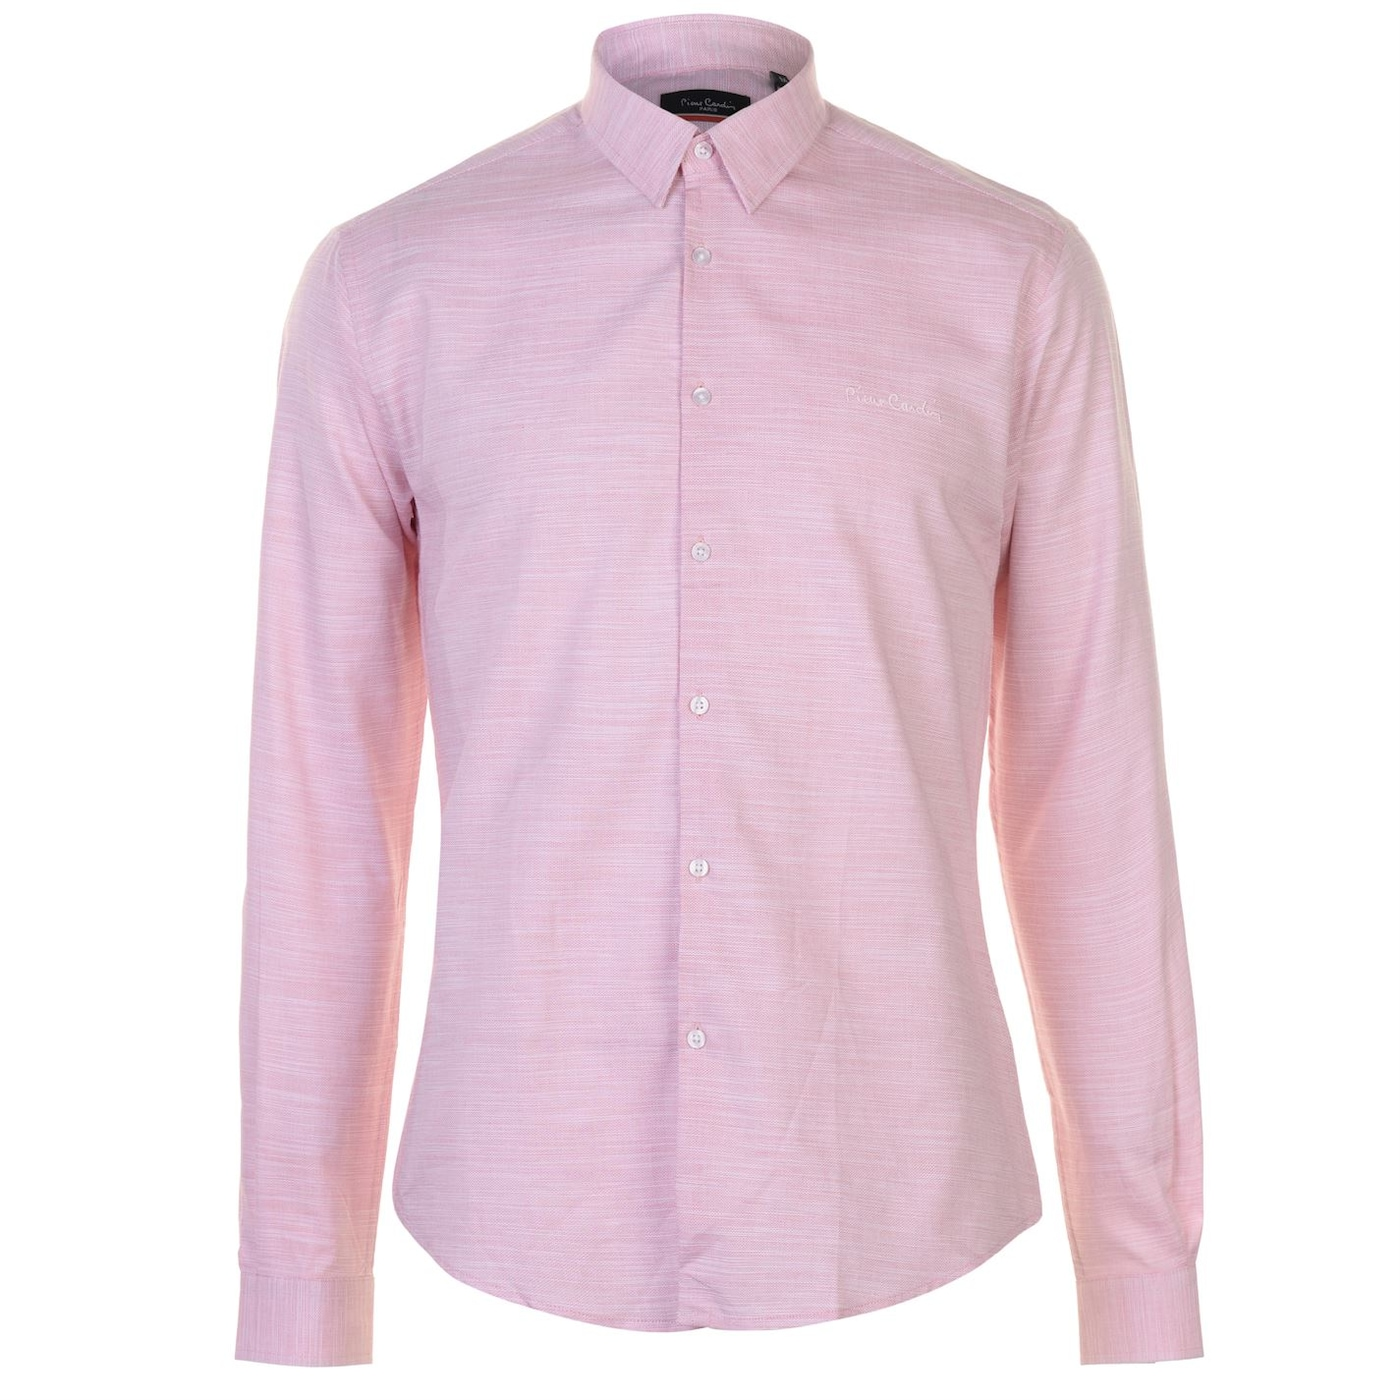 Pierre Cardin Slub Shirt Mens